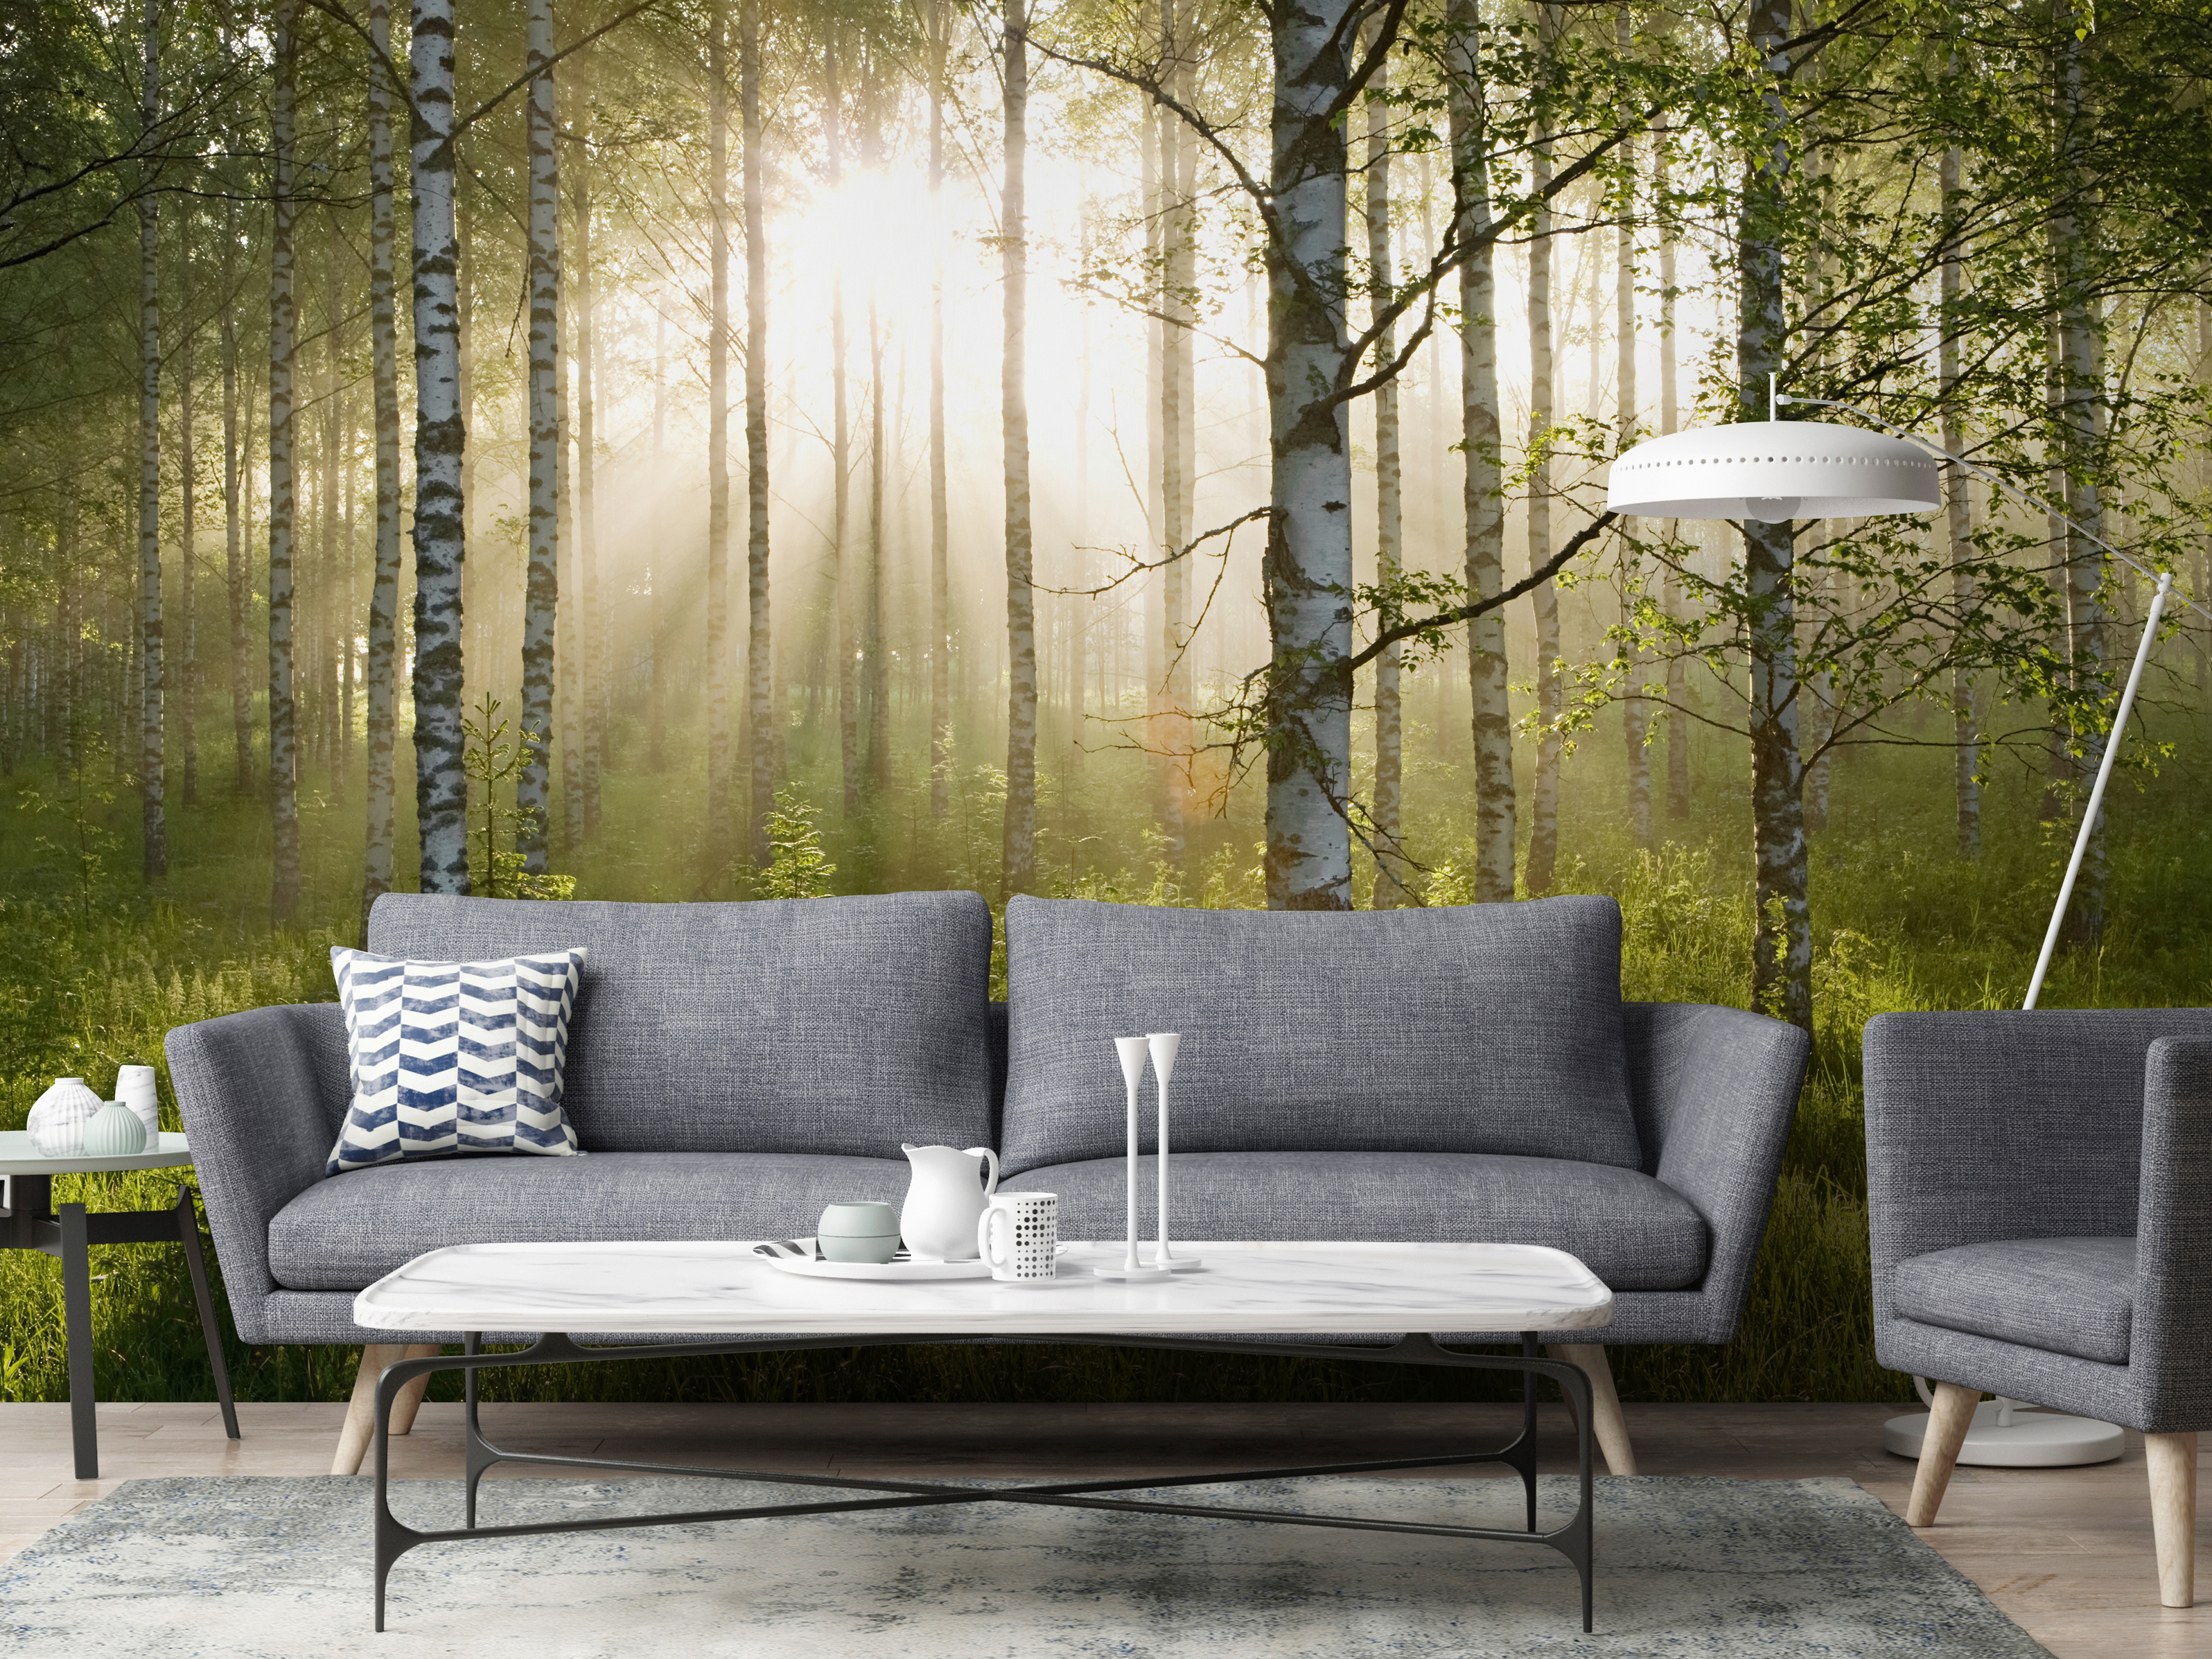 Birch Forest Sunlight Wallmural, from £30 per square metre, Wallsauce (Wallsauce/PA)